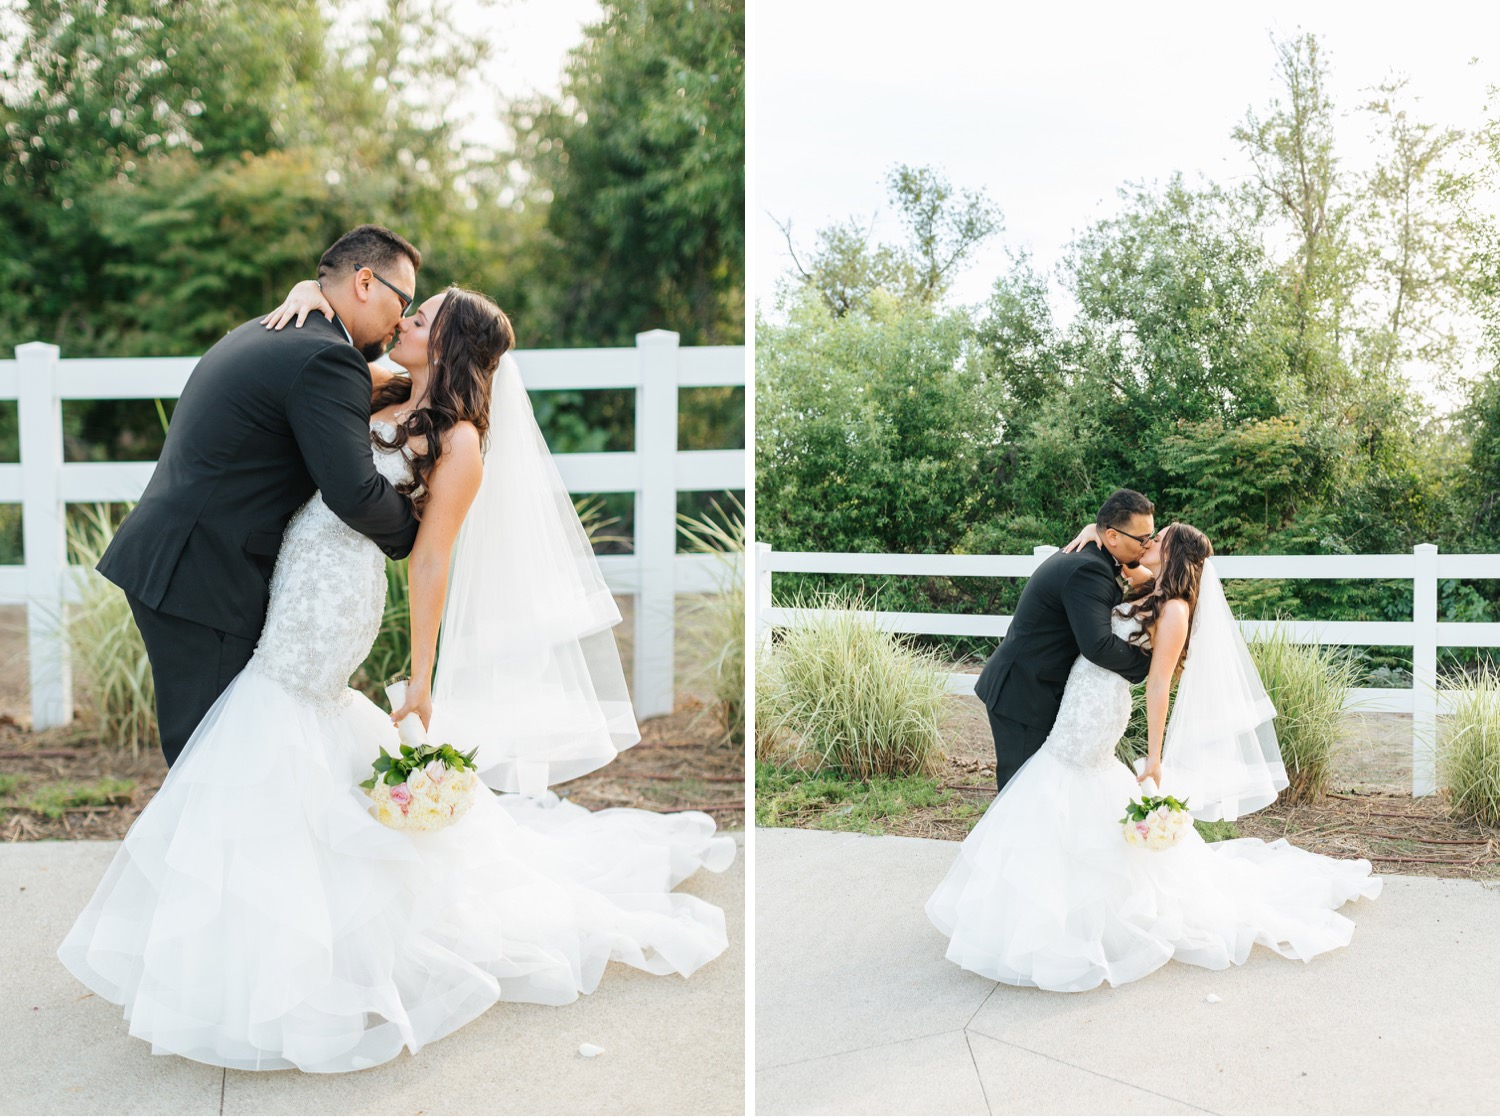 Groom dipping the bride - https://brittneyhannonphotography.com